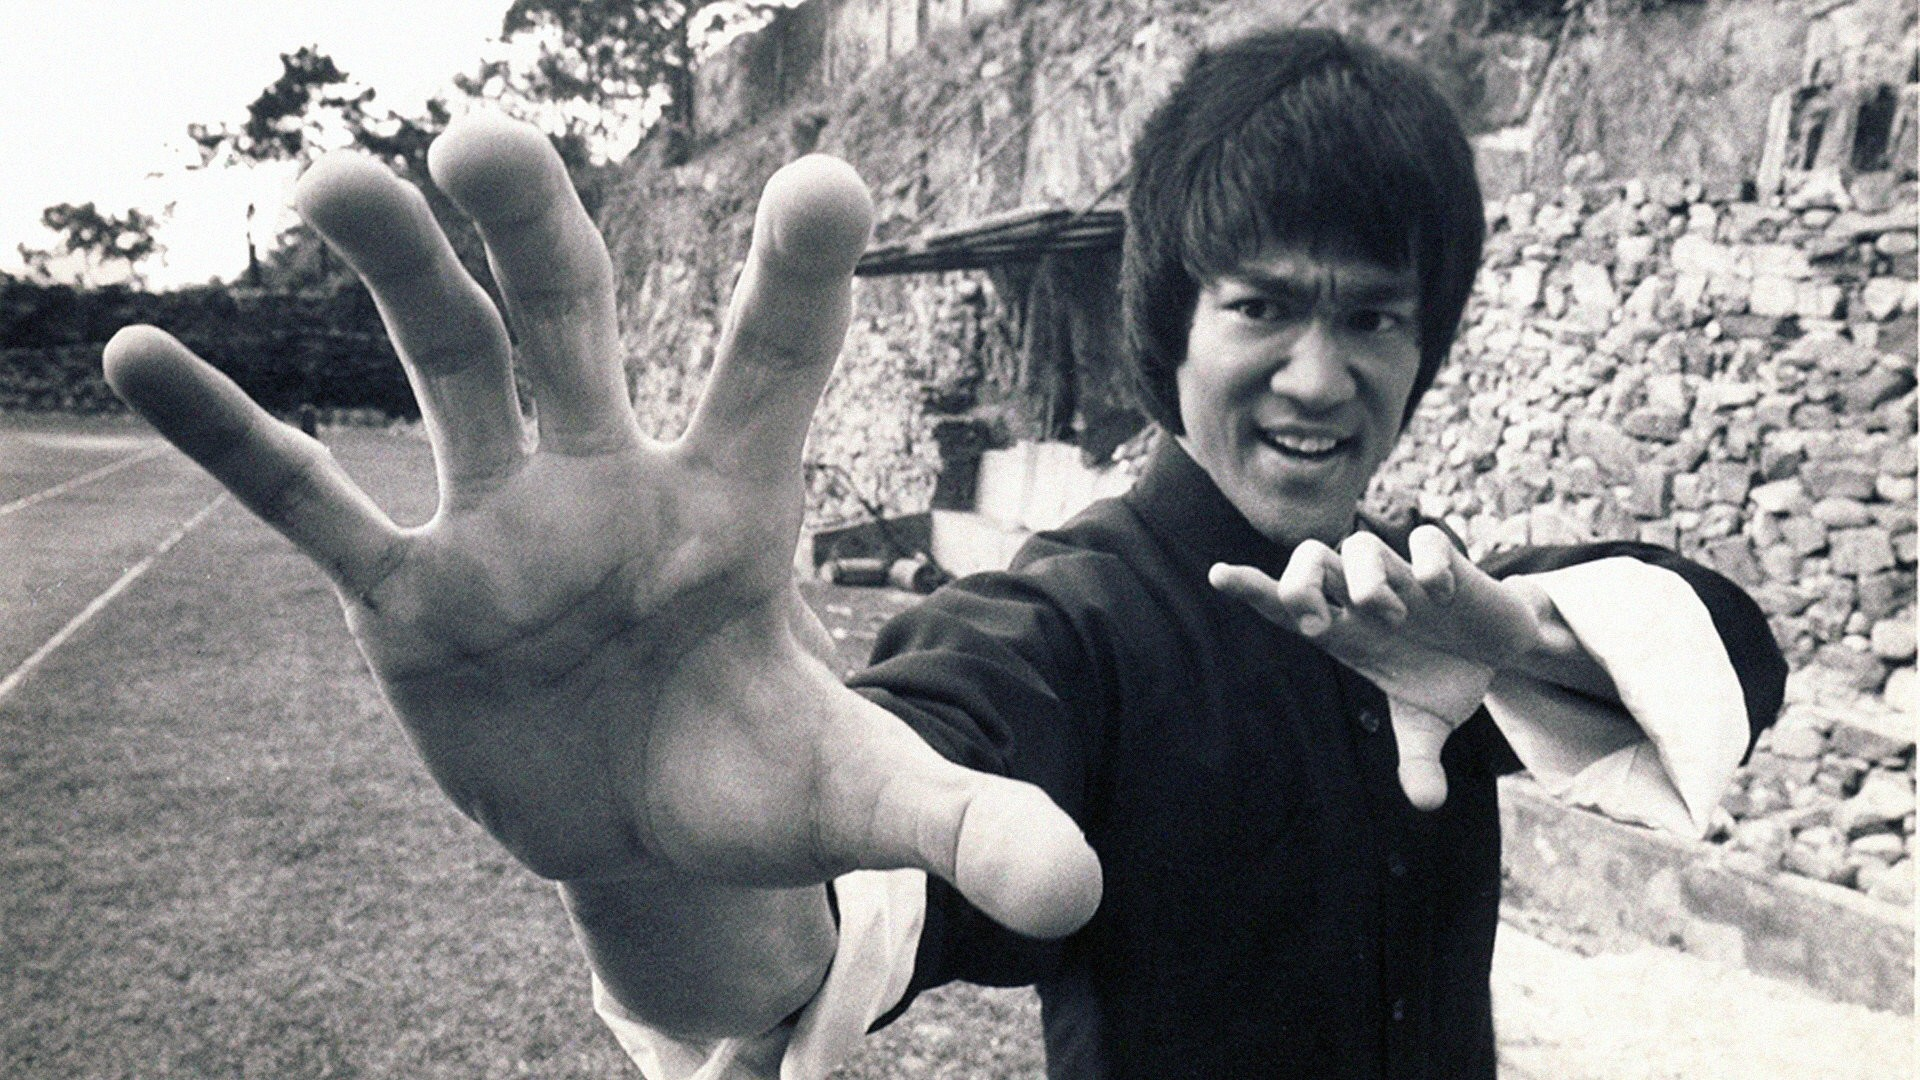 bruce lee, monochrome, men